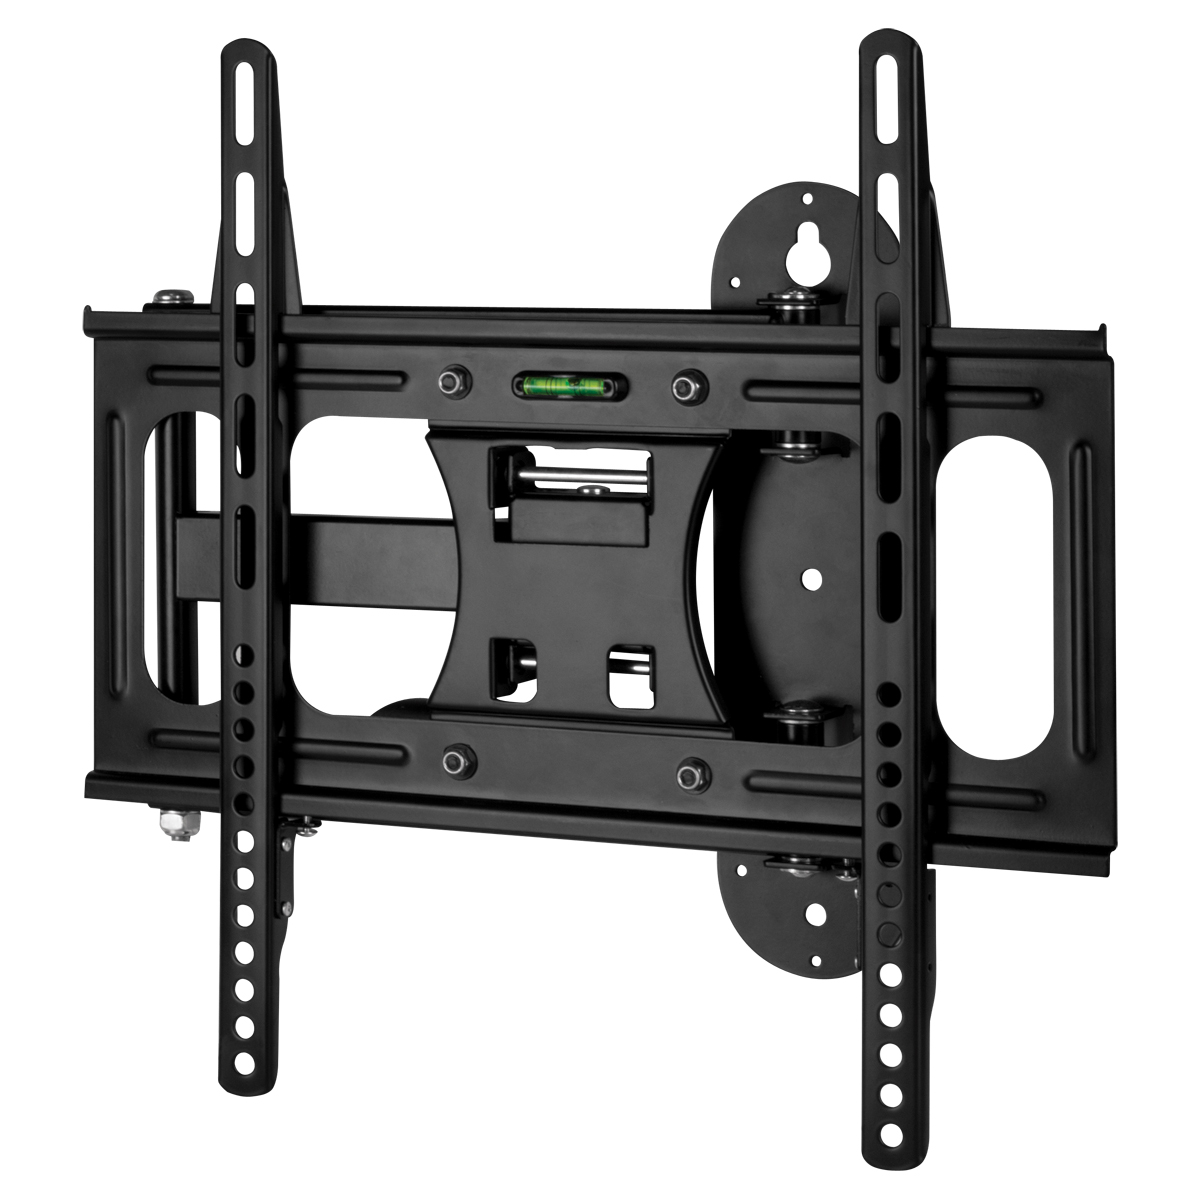 Full-Motion TV Wall Mount ARCTIC TV Flex M Folded Flat